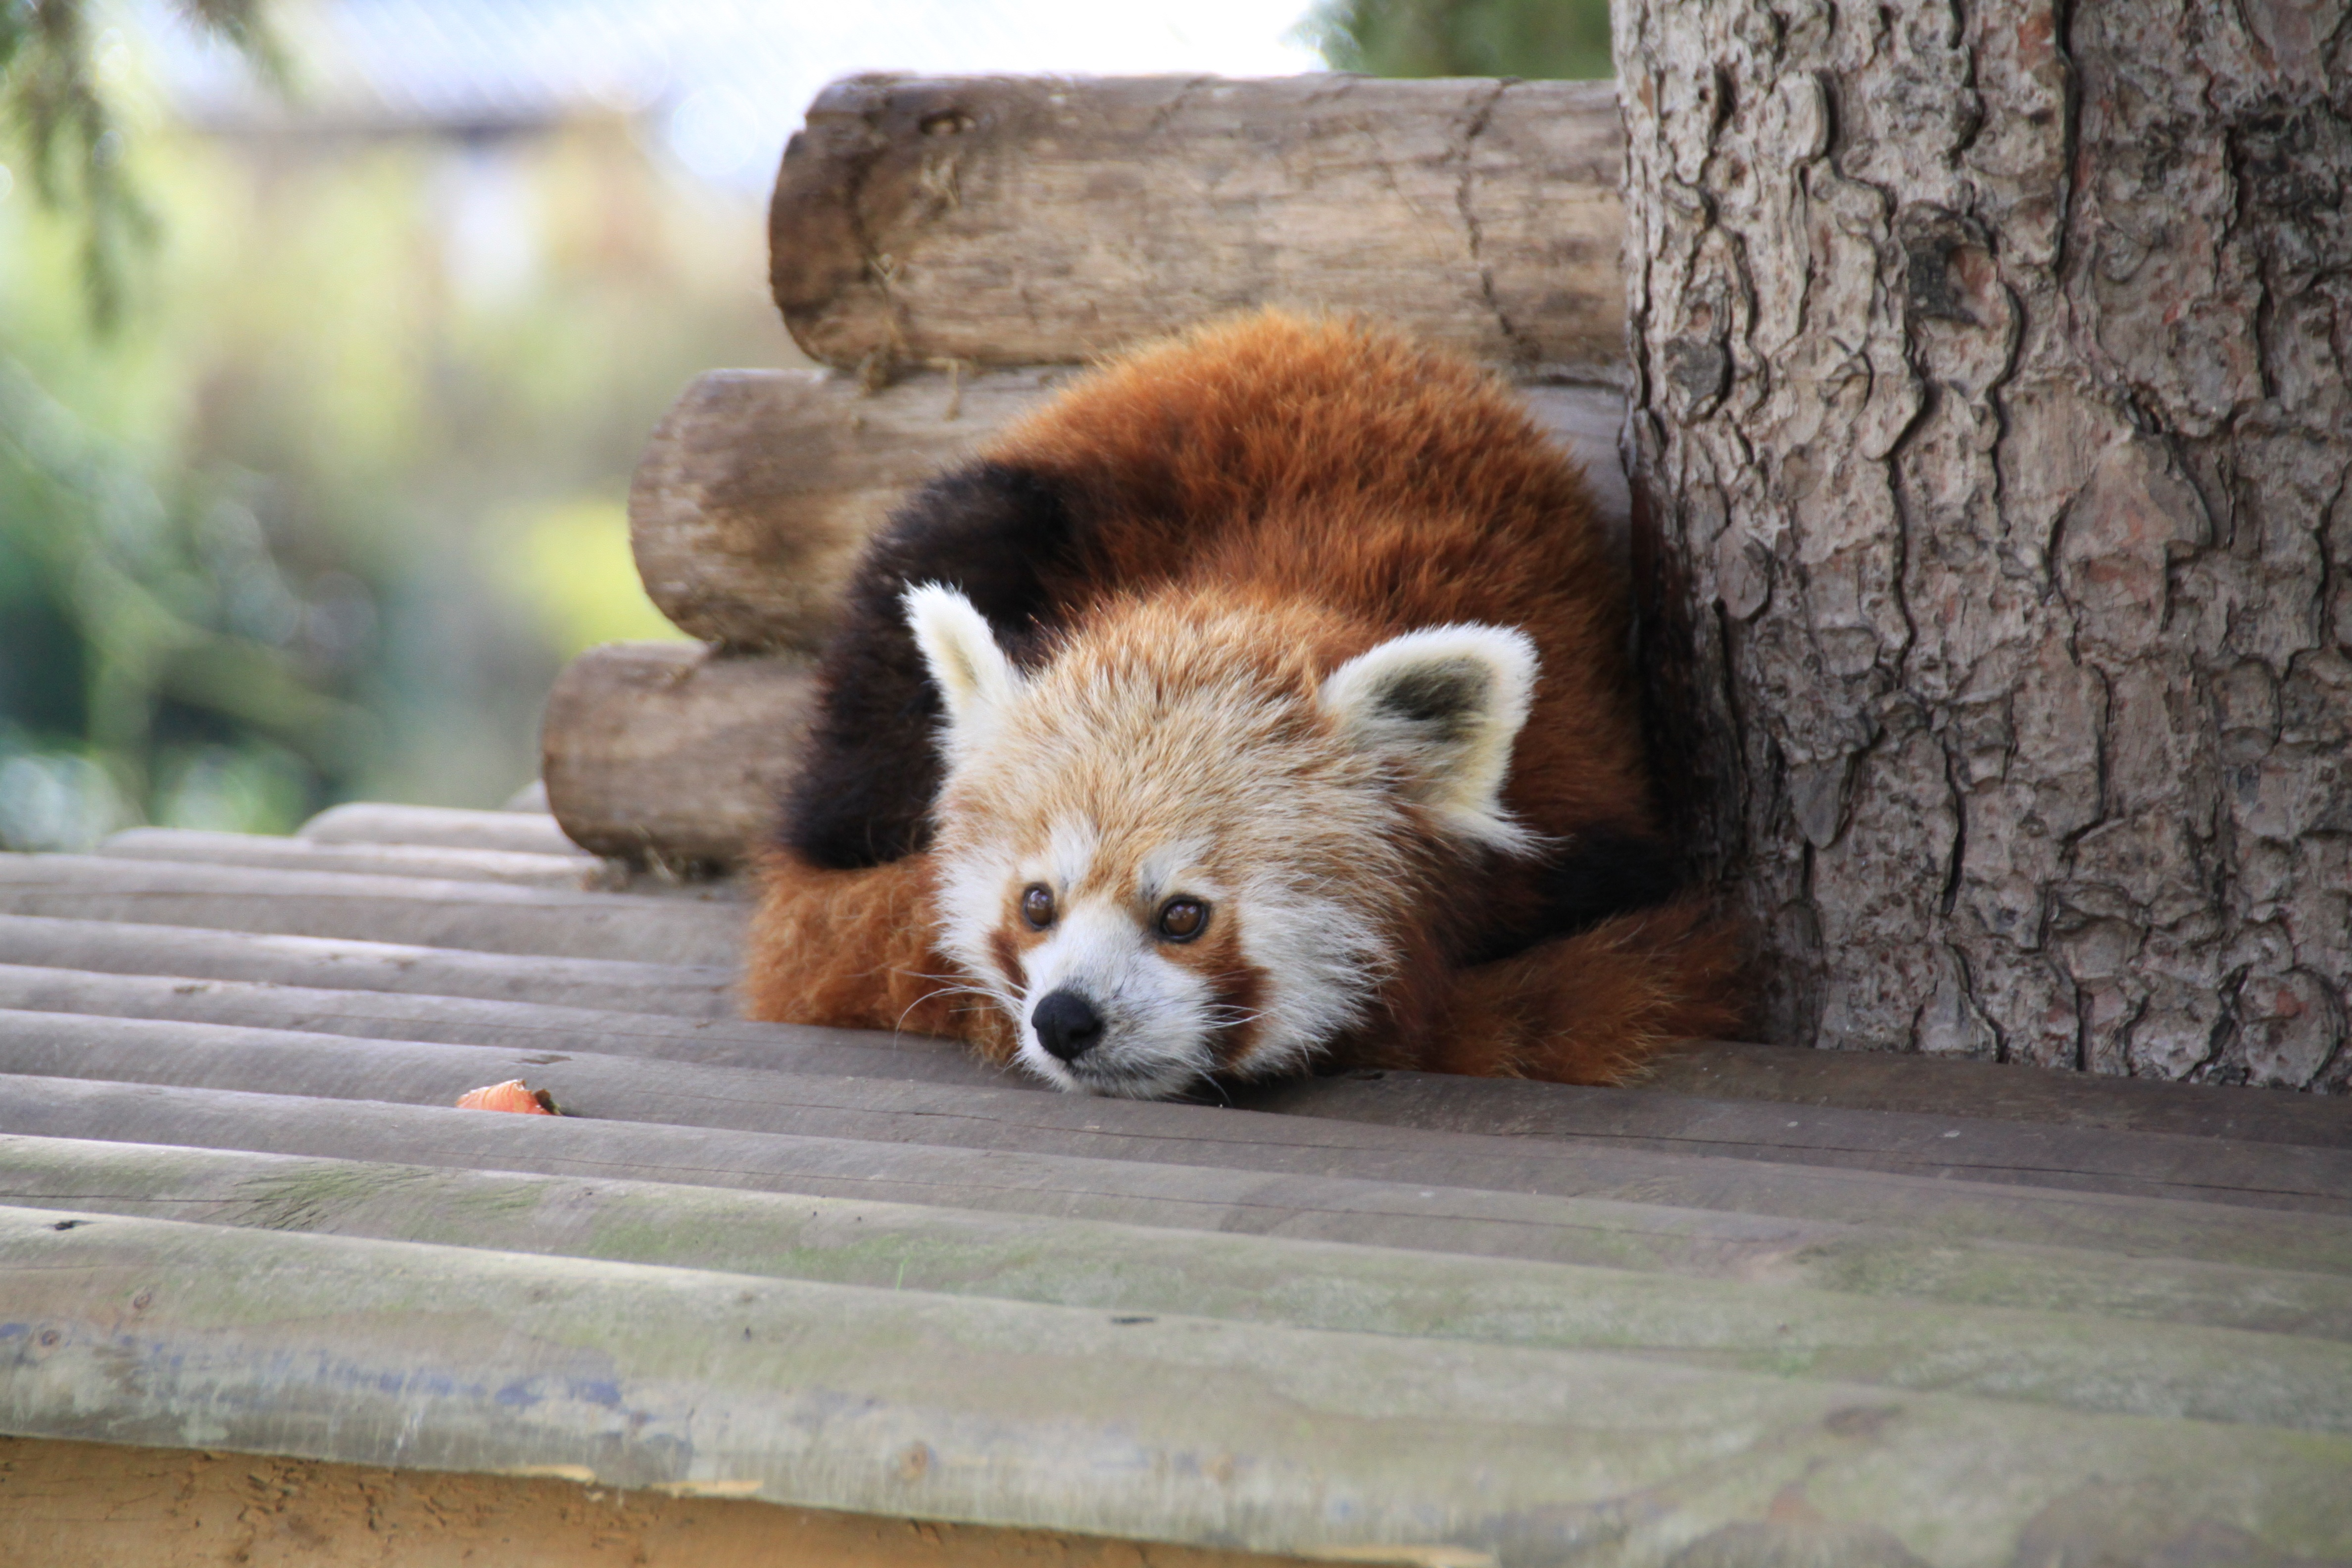 108459 download wallpaper Animals, Red Panda, To Lie Down, Lie, Panda, Relaxation, Rest screensavers and pictures for free